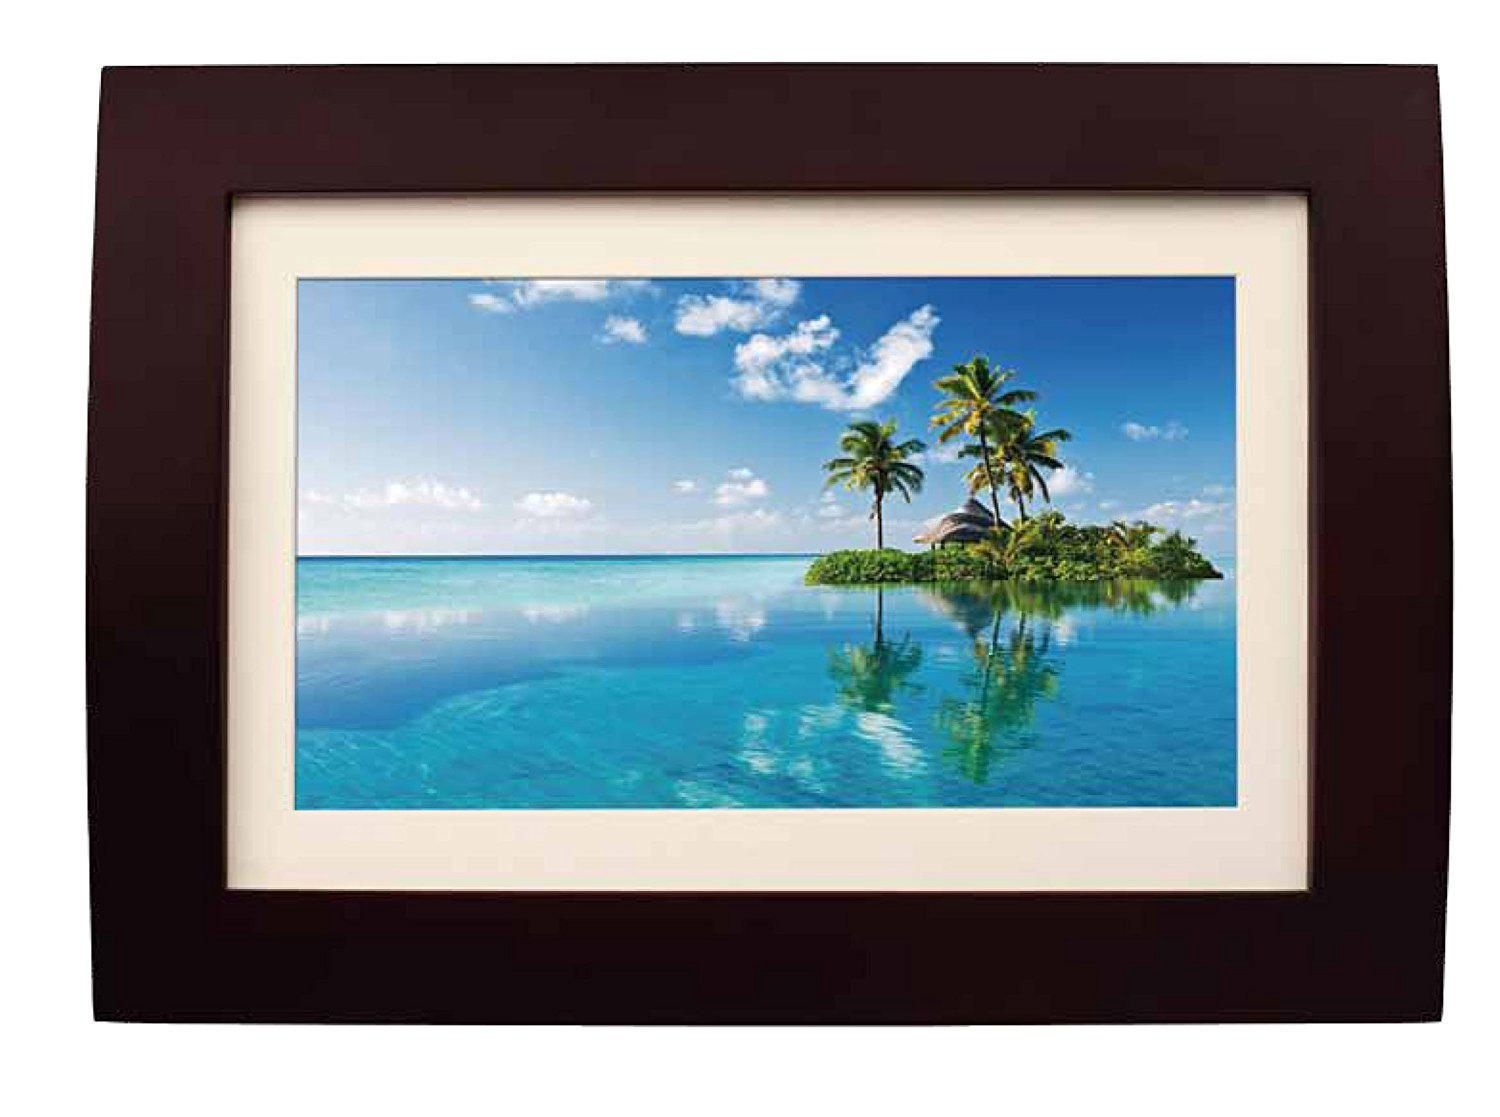 Digital picture frames walmart canada sylvania 10 wood digital photo frame with remote jeuxipadfo Image collections